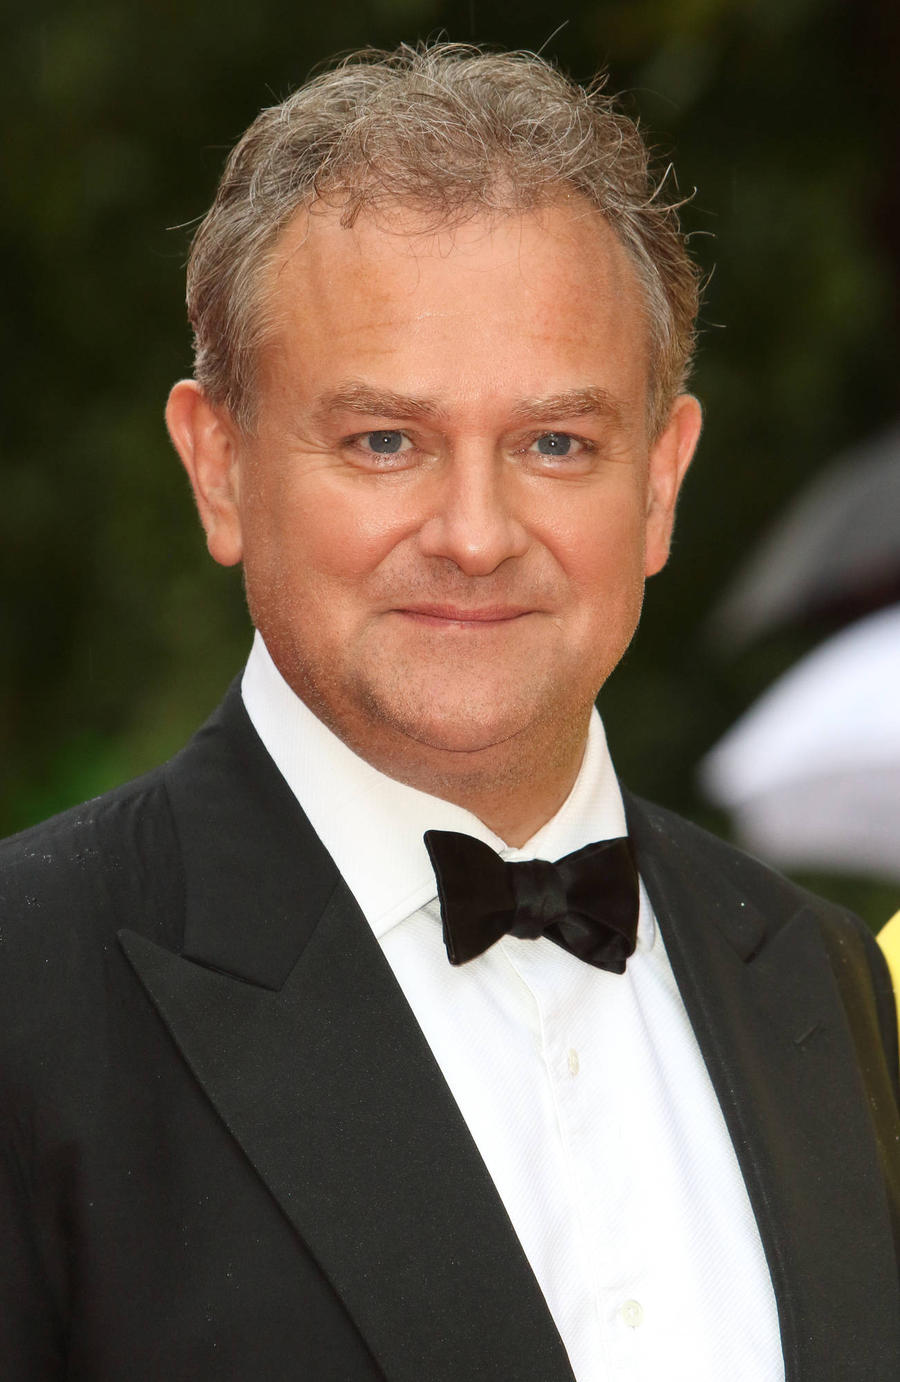 Hugh Bonneville Returns To The Stage After 10 Years